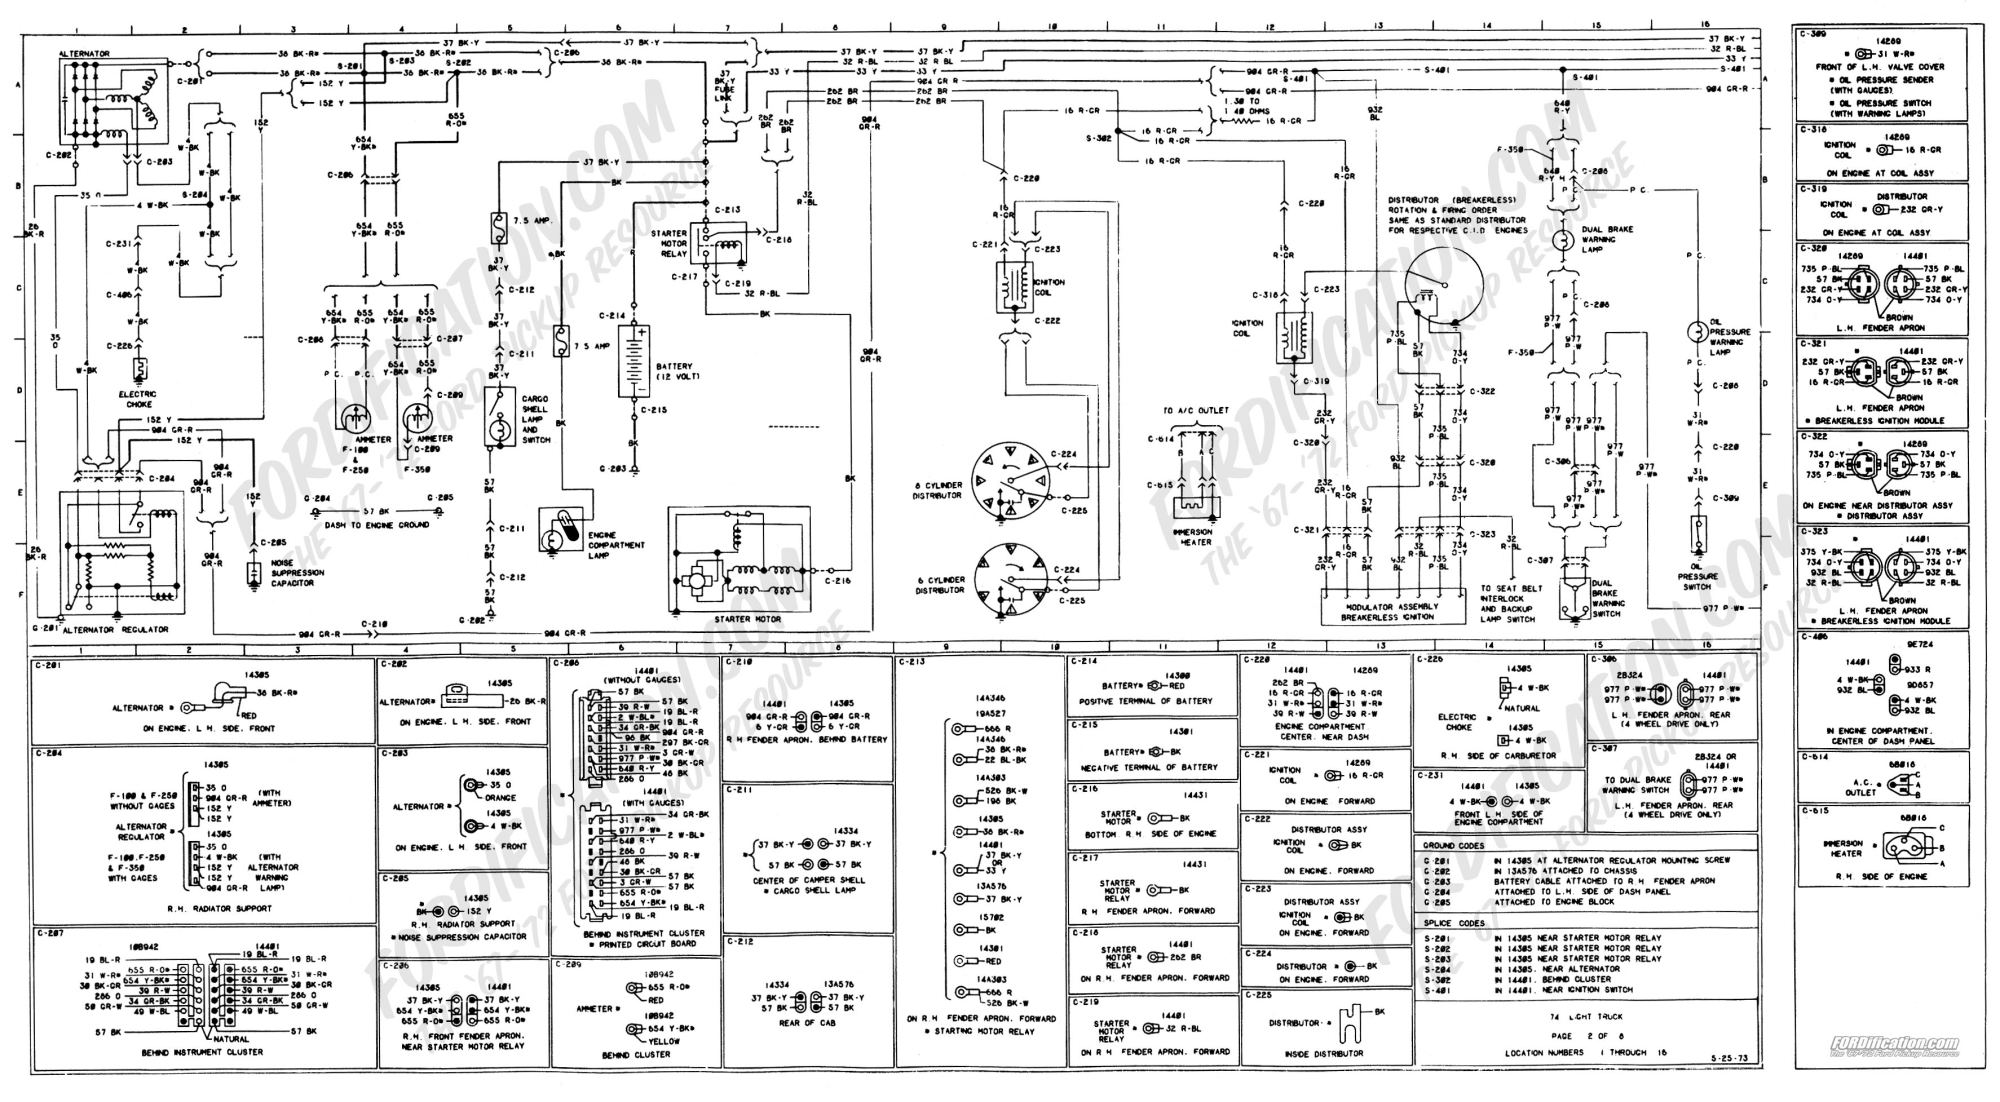 hight resolution of 2003 sterling fuse box wiring diagram mix sterling fuse box wiring diagrams konsult2003 sterling fuse box